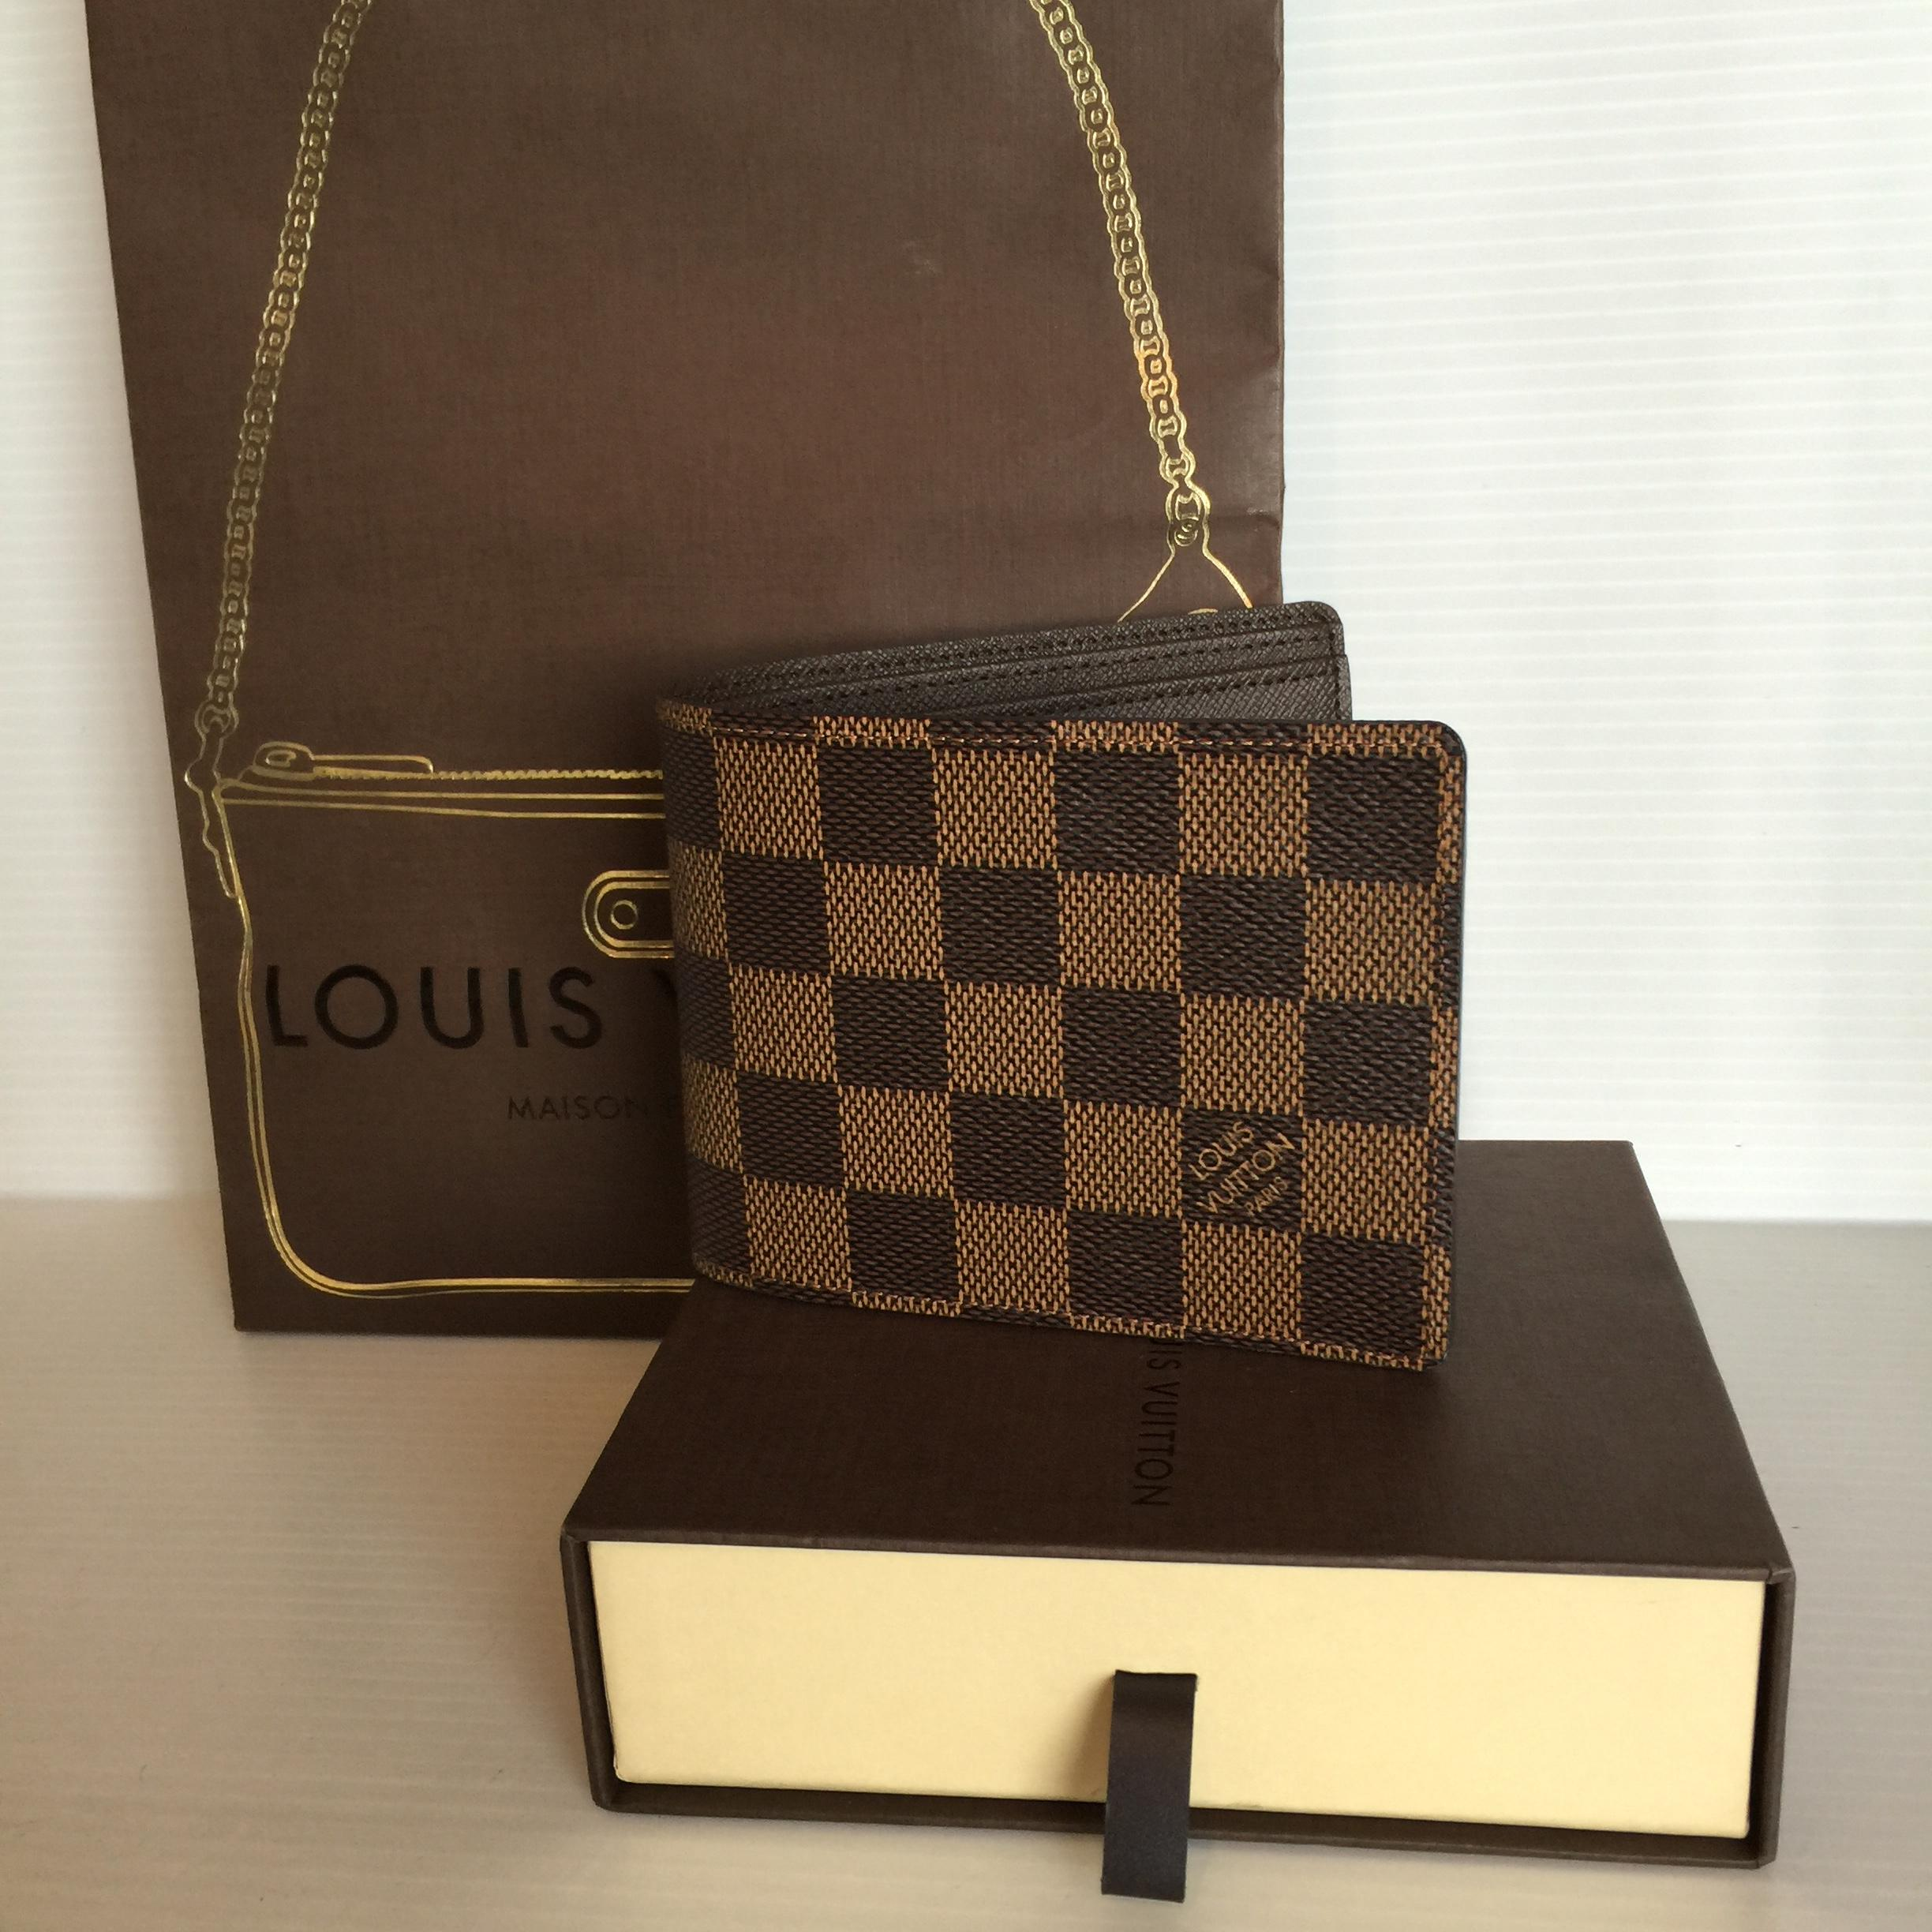 [SOLDOUT]Louisvuitton Multiple wallet damier ของใหม่